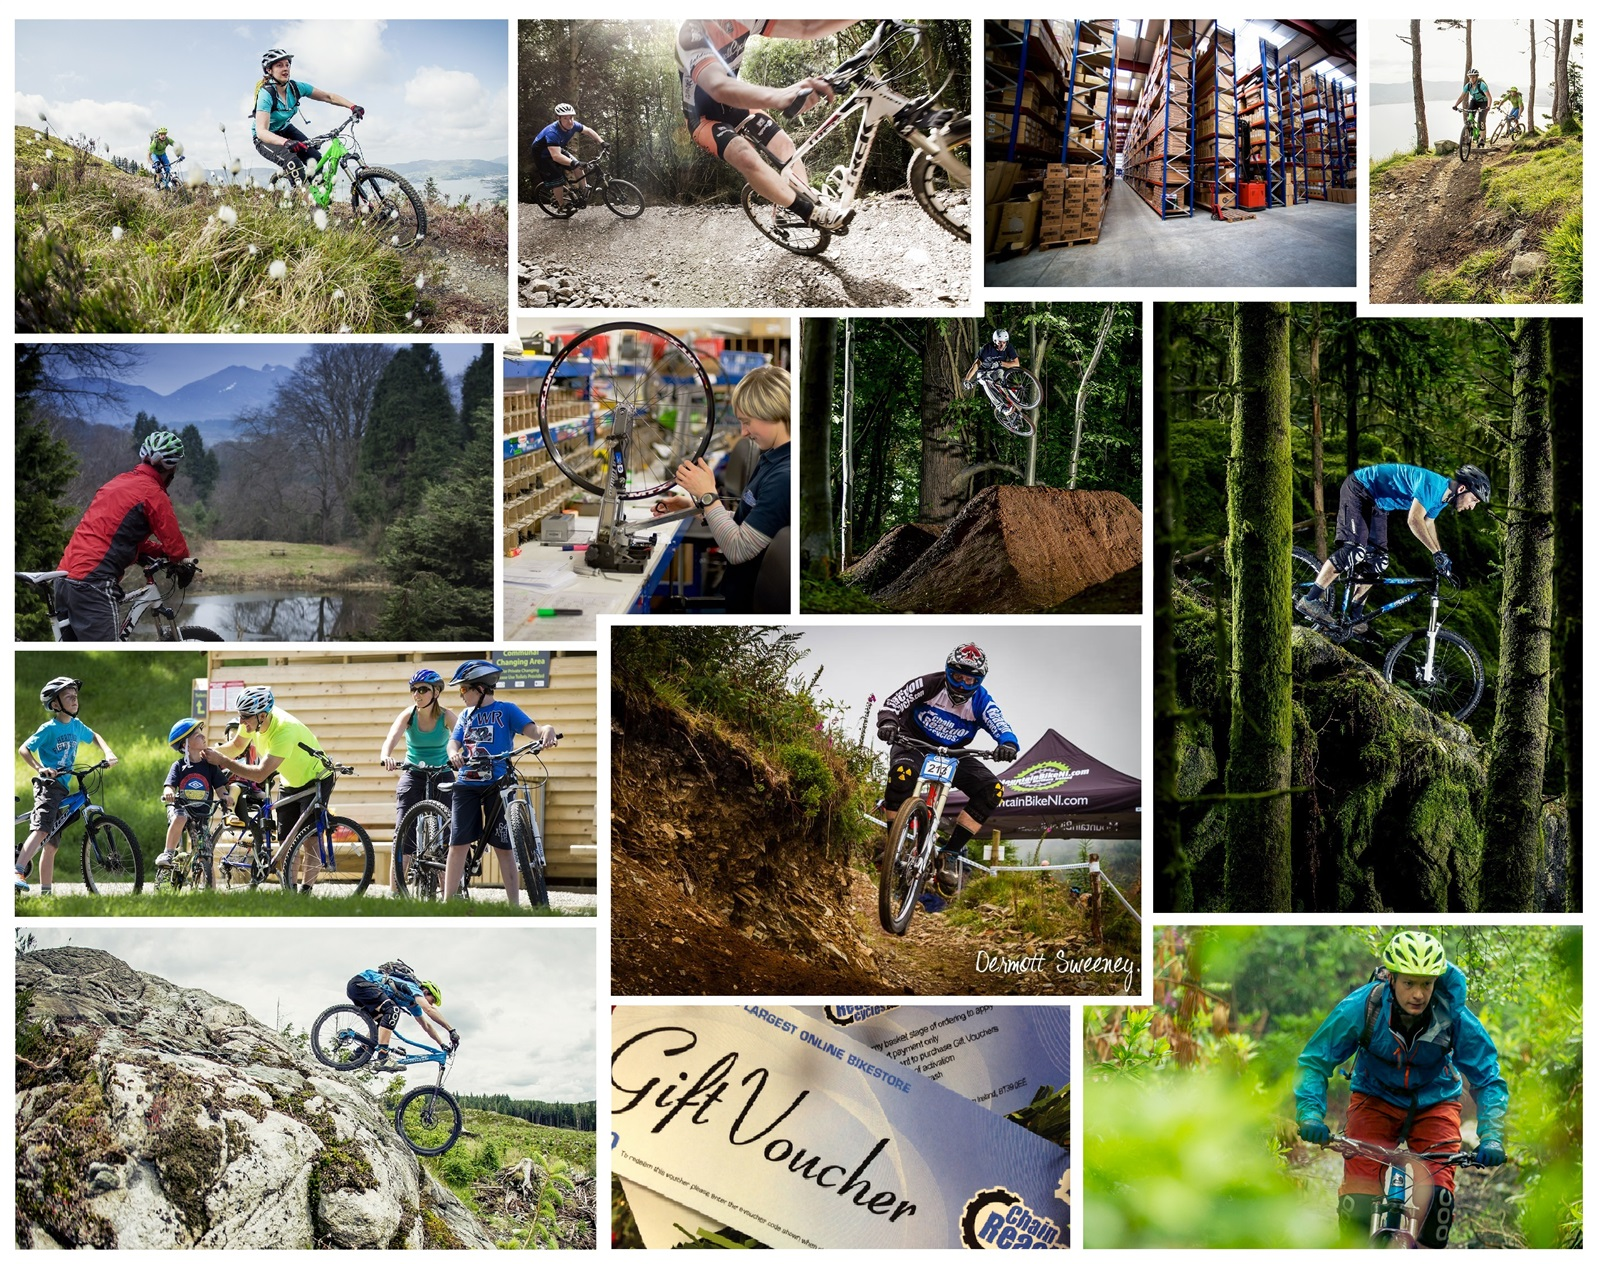 Mountainbike competition